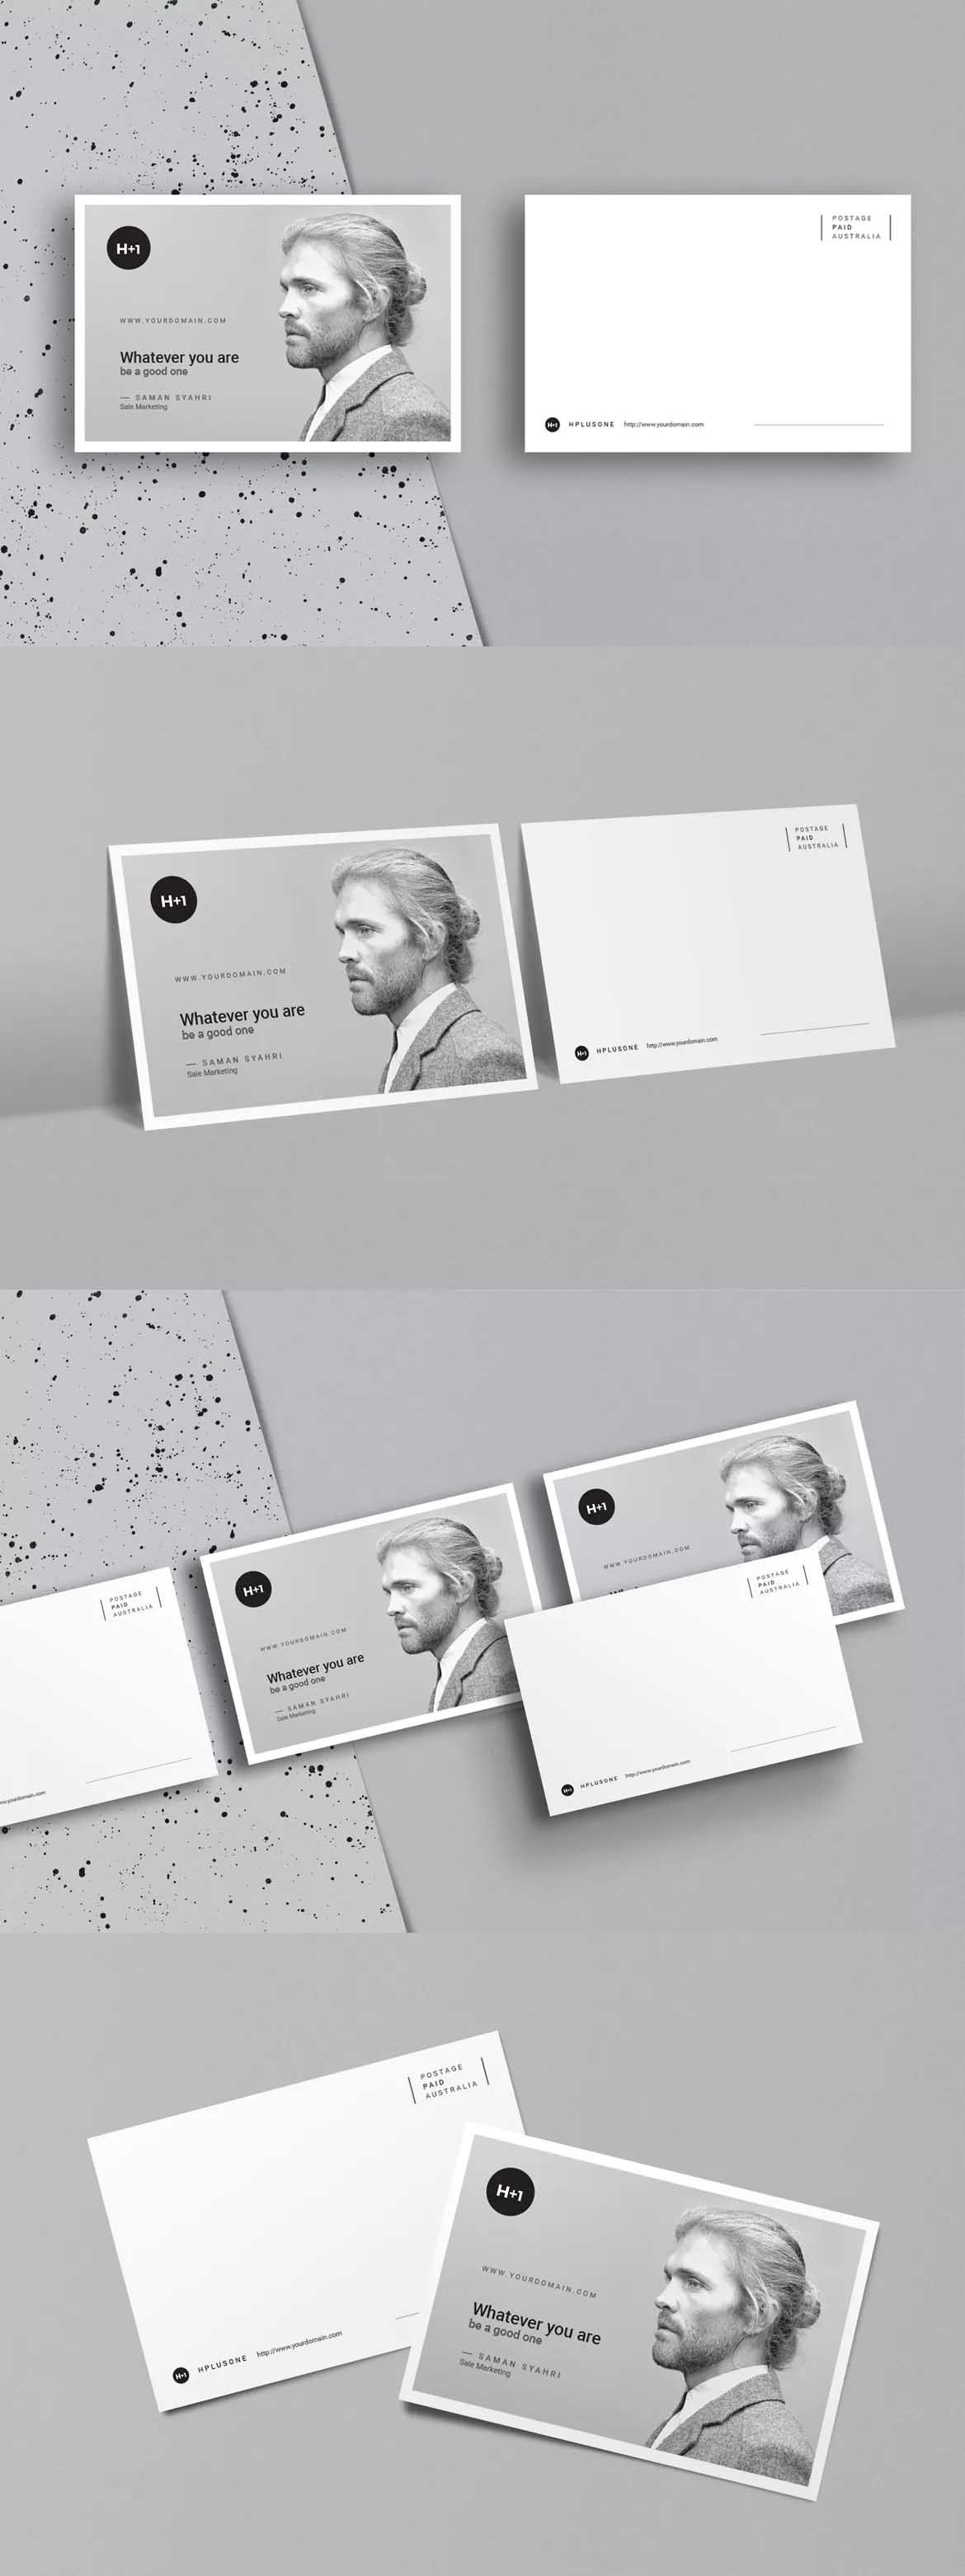 Postcard Template InDesign INDD | Postcard Design Templates | Pinterest